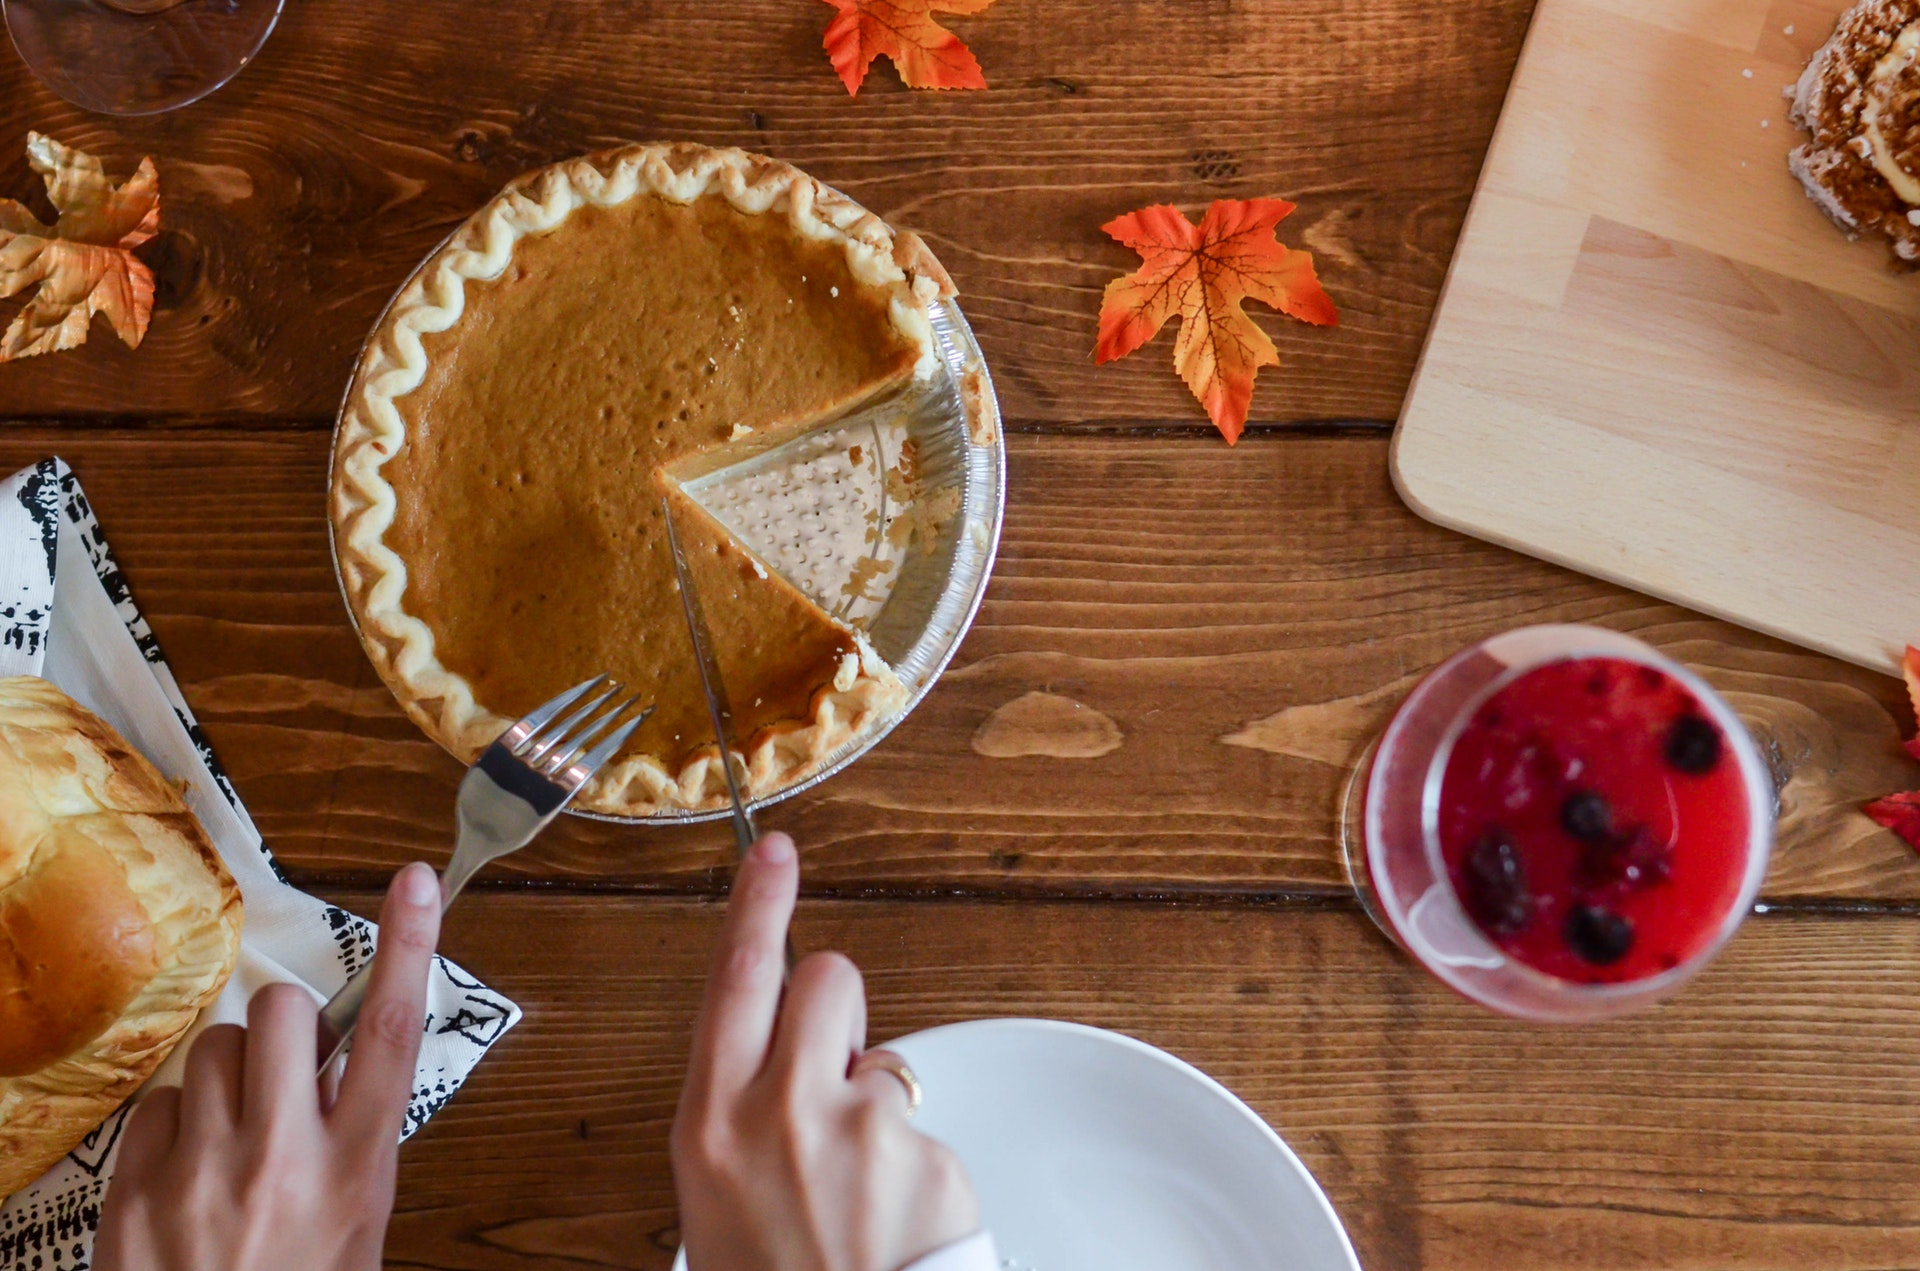 Soy-free pumpkin pie is simple to make with this recipe! - IMAGE VIA PEXELS